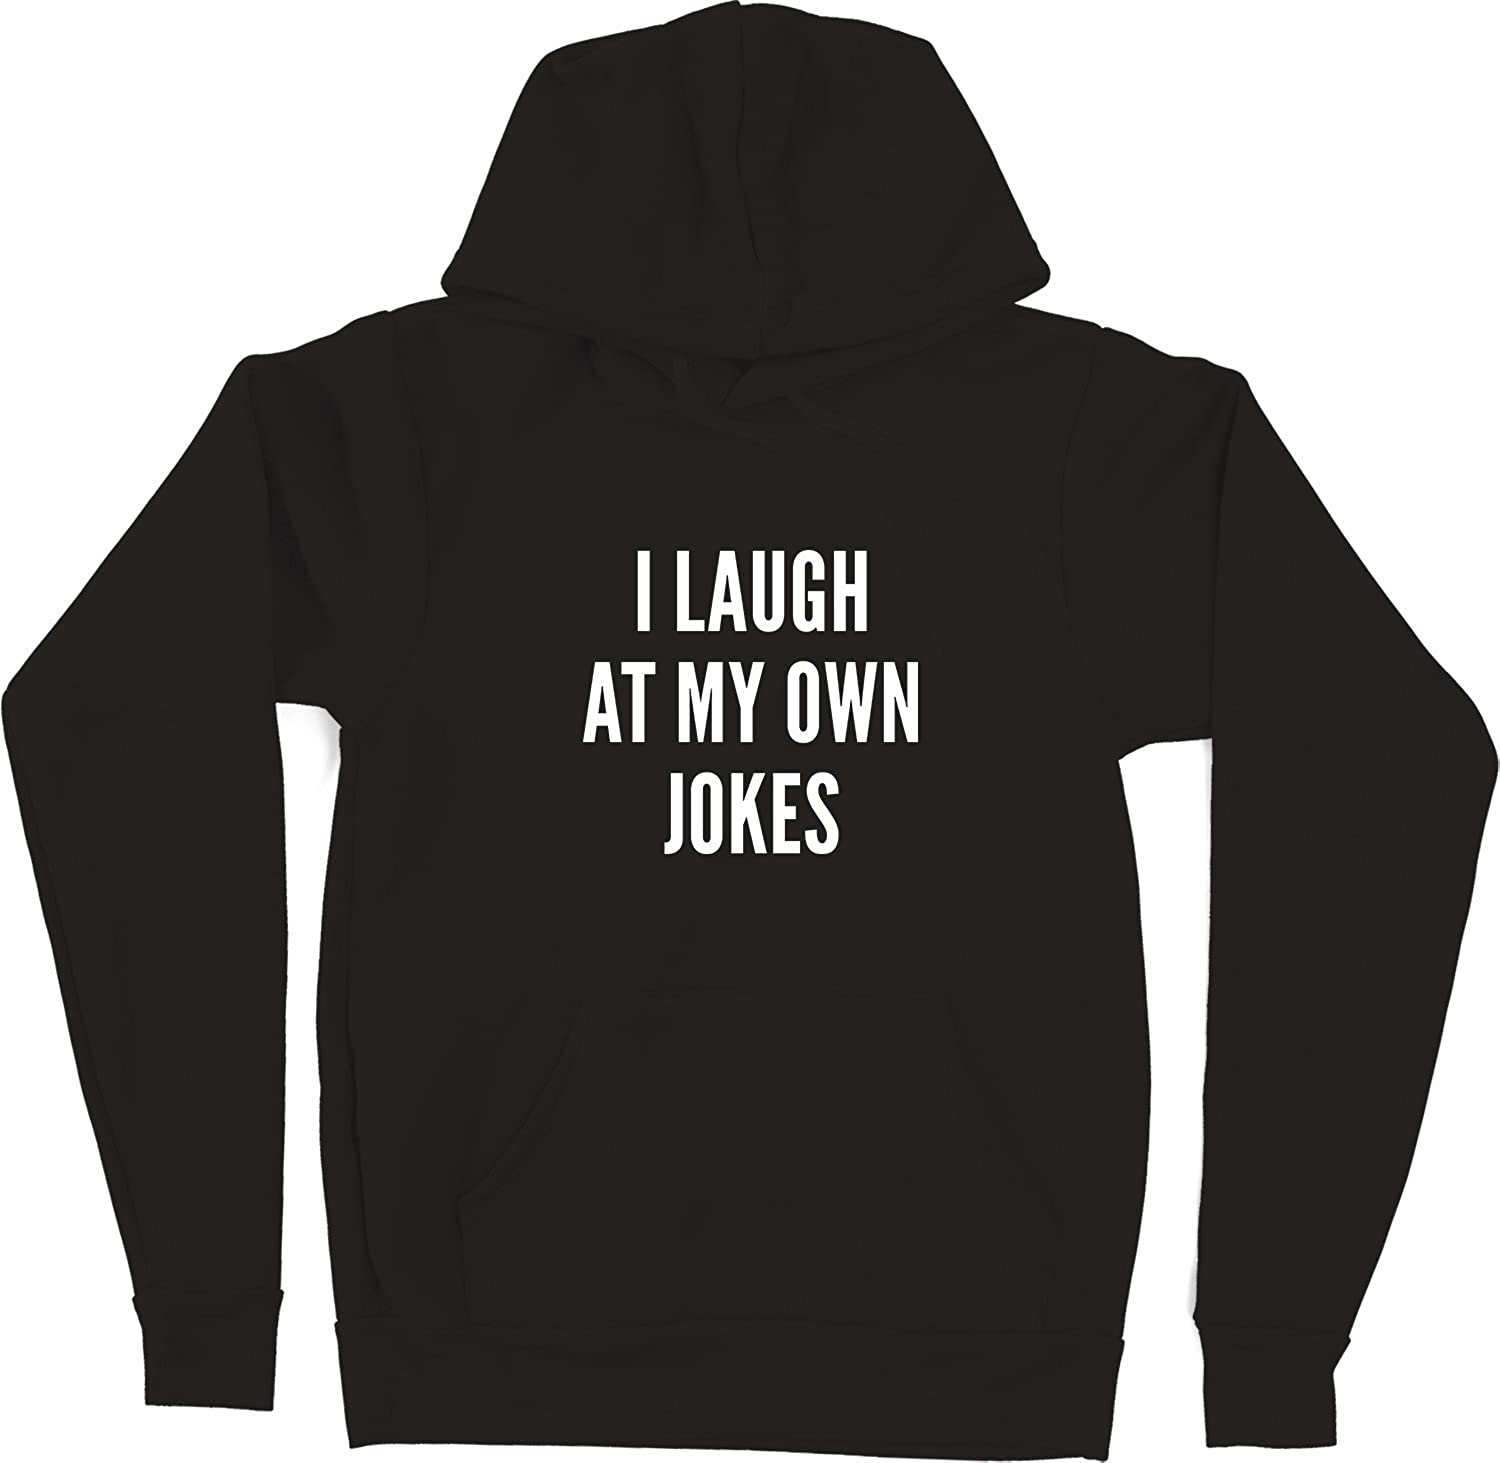 Black VectorPlanet I Laugh at My Own Jokes Unisex Hoodie